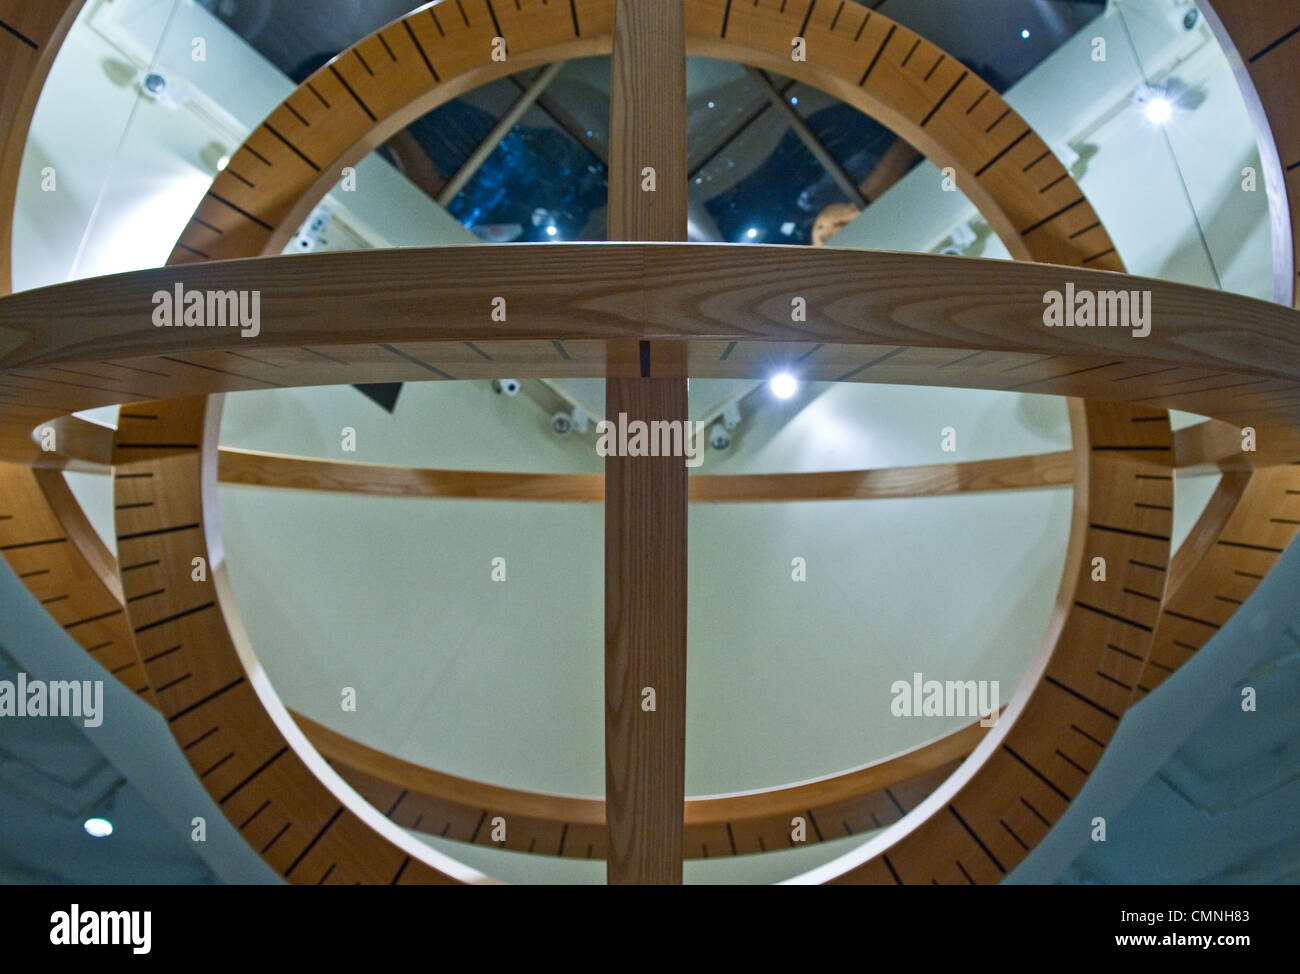 Asia Saudi Arabia Dammam, the reception center for the oil industry Aramco - Stock Image